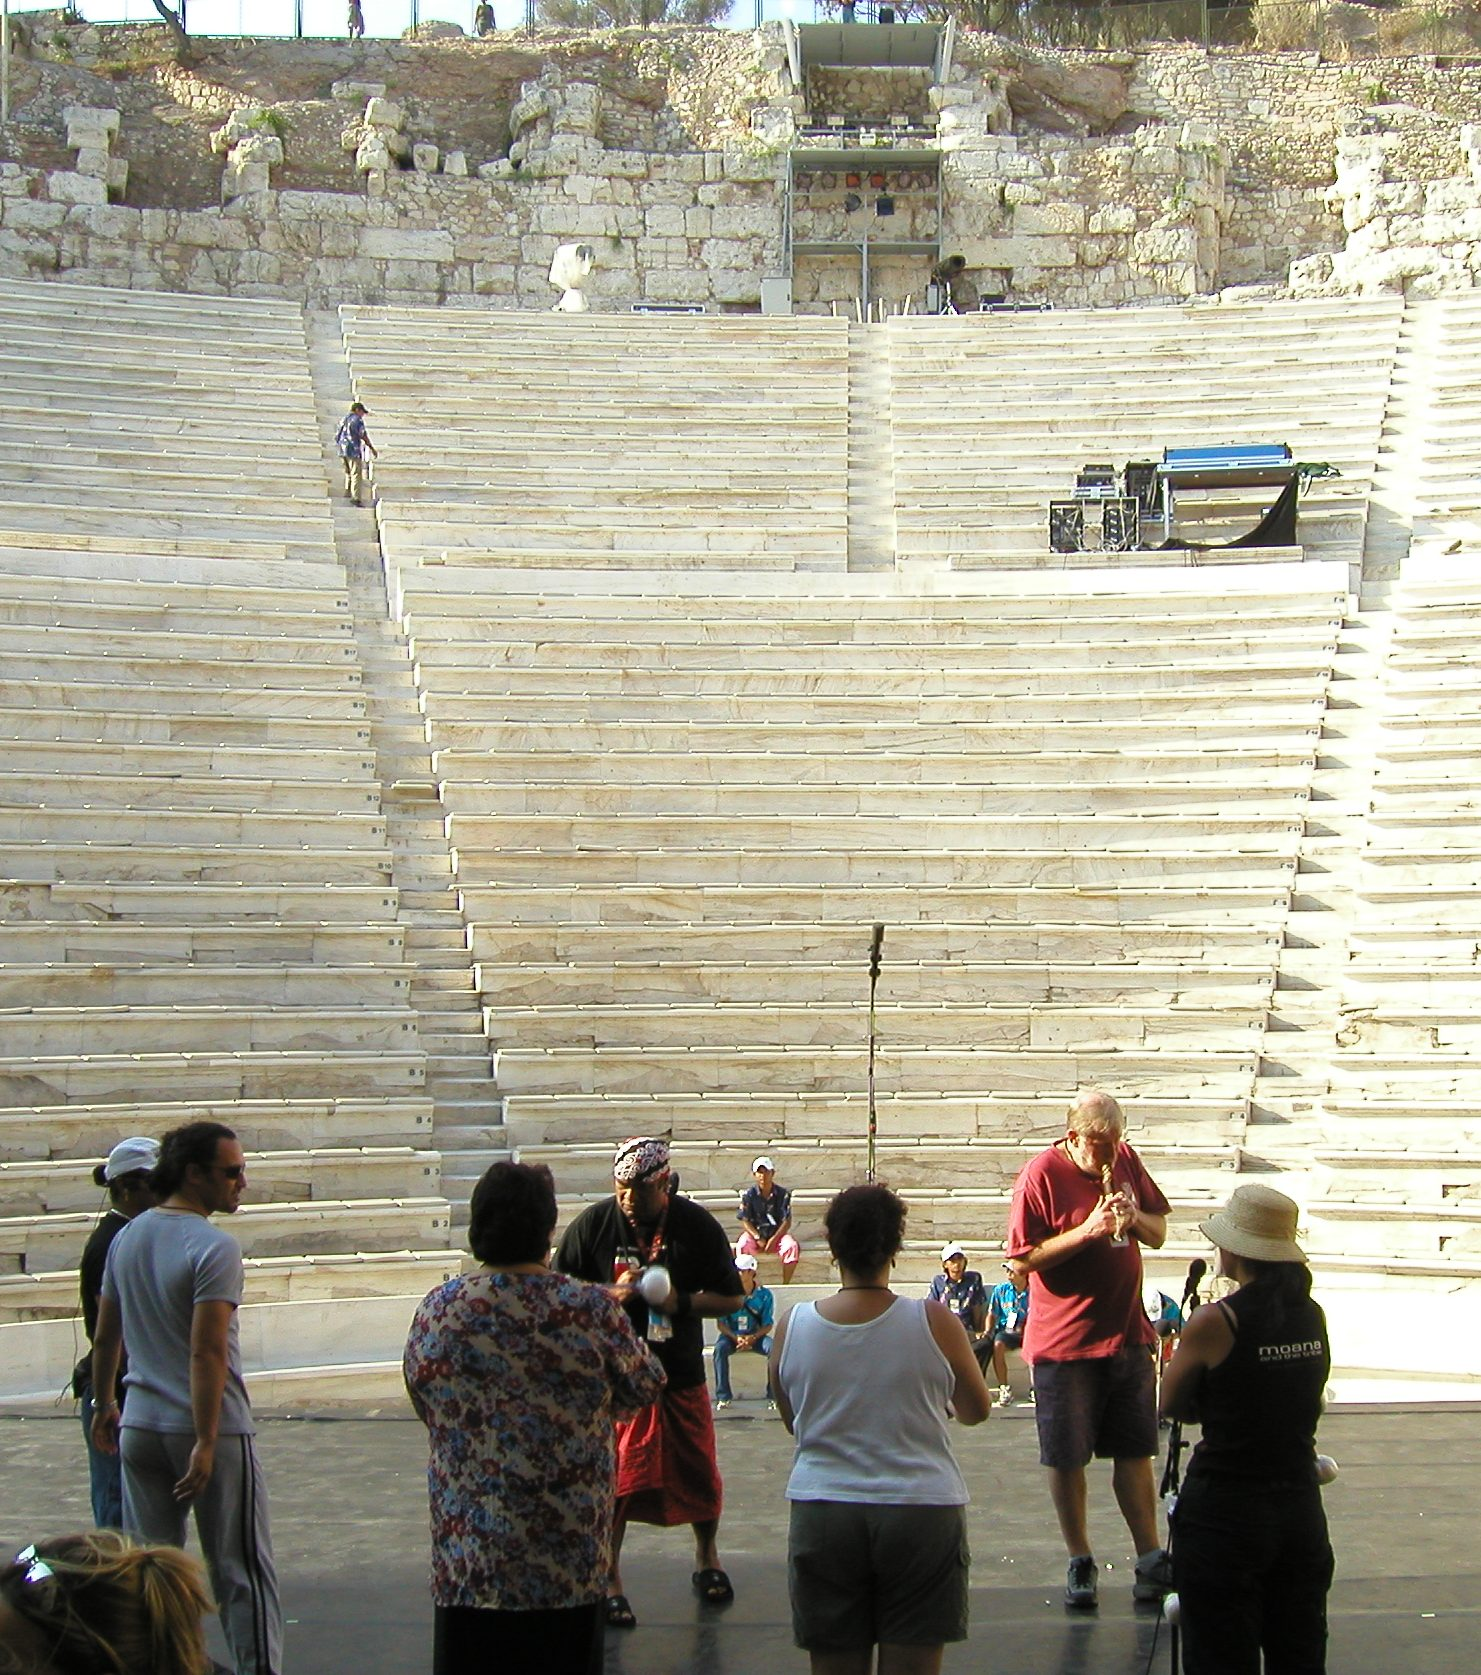 Soundcheck at the Odeon of Herodes Atticus, Athens Greece (photo ©2003 Stuart Page)